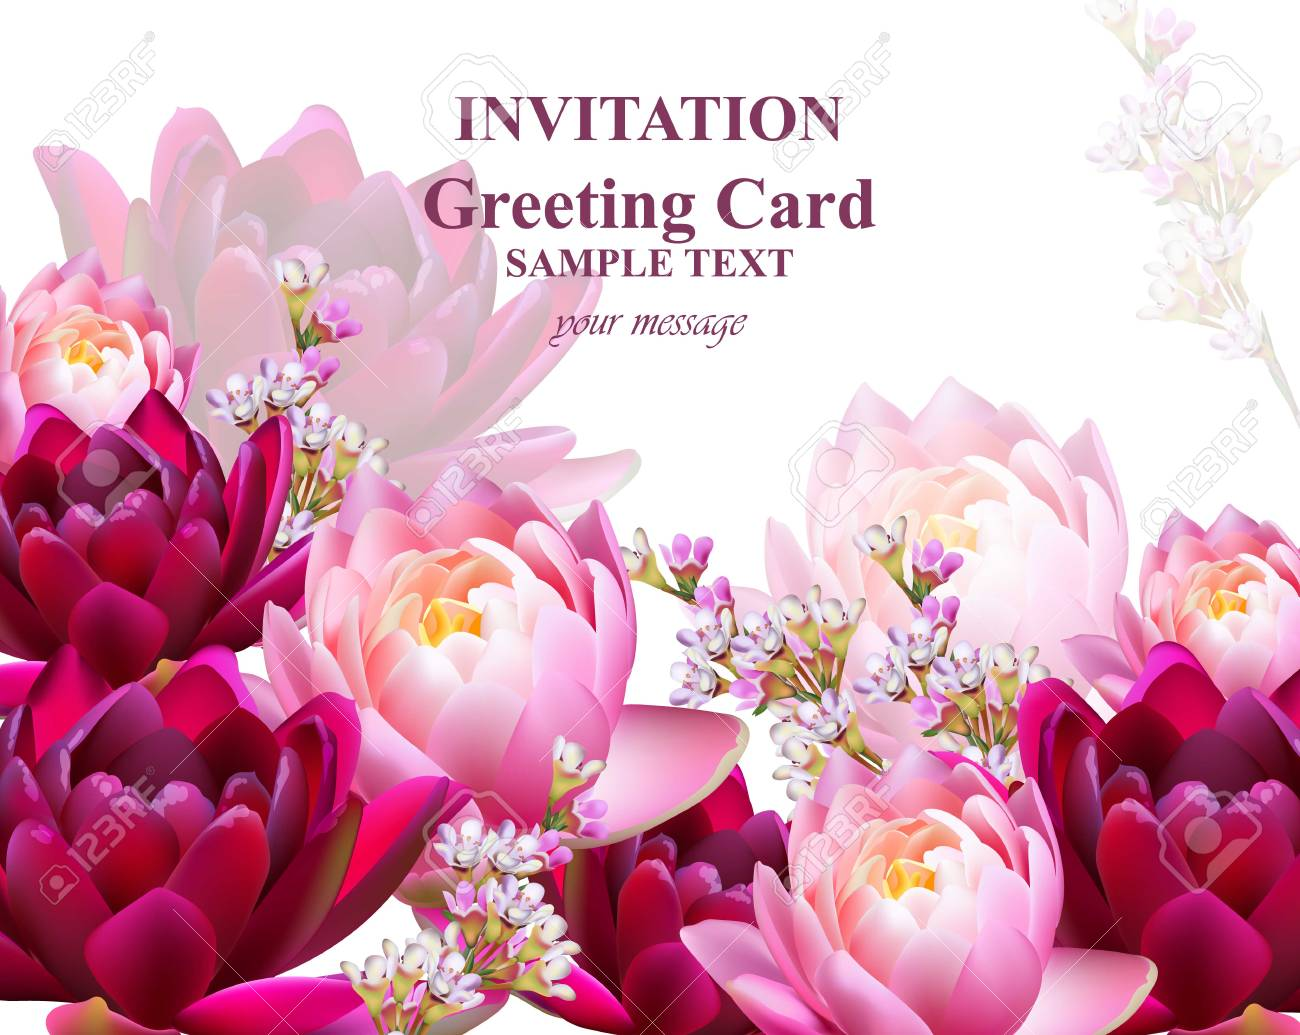 Invitation Or Greeting Card With Water Lily Flowers Vector